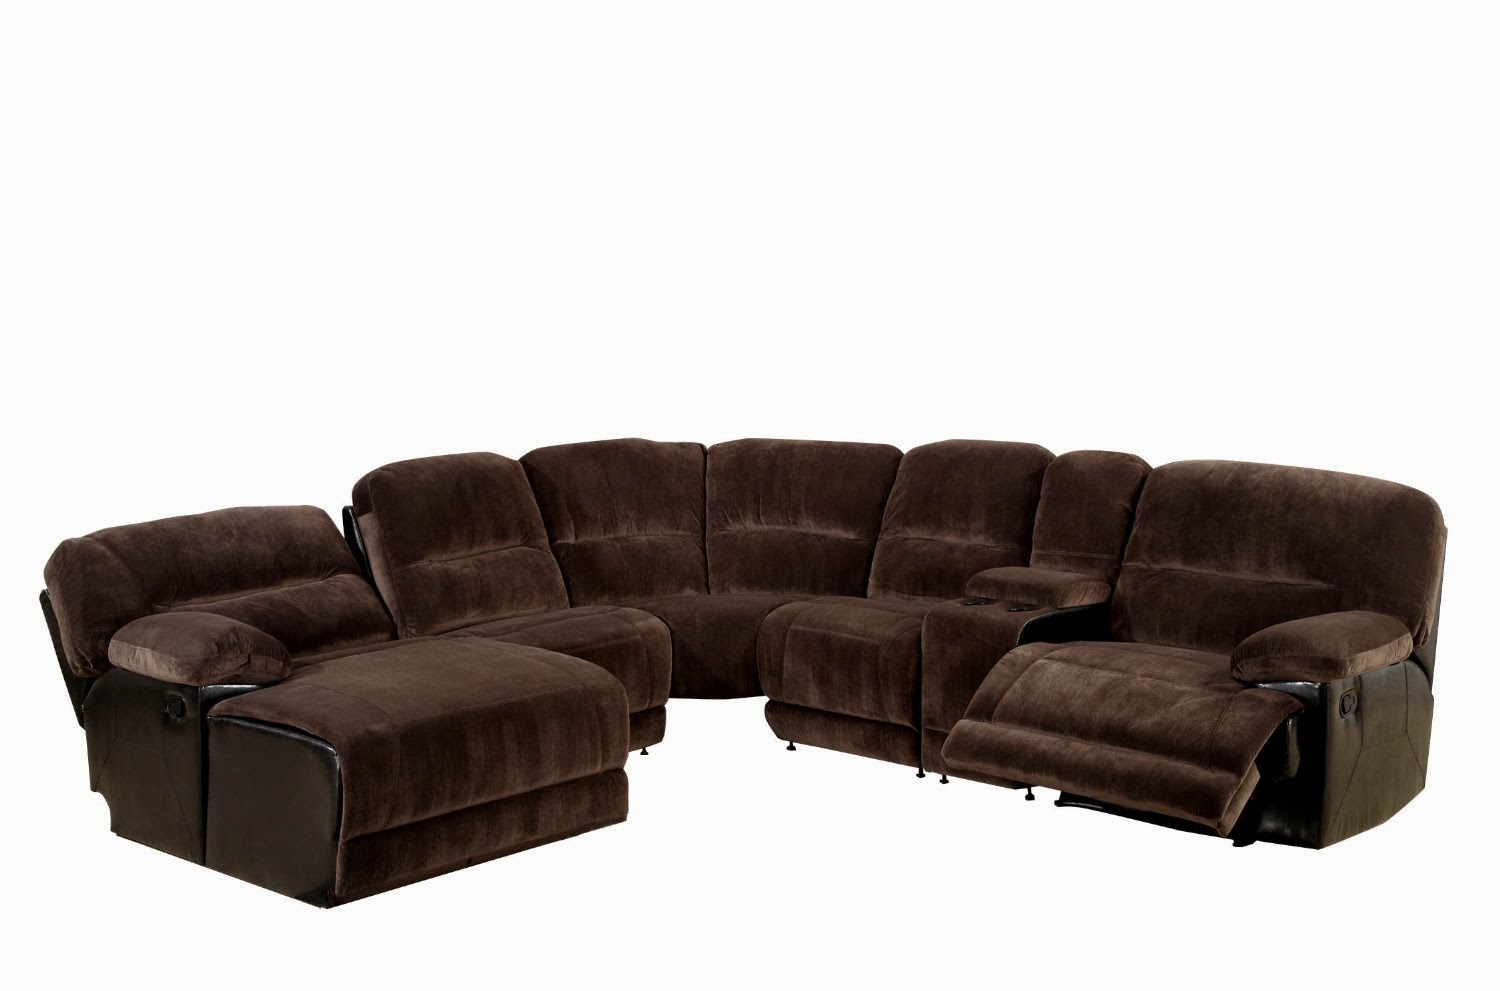 Reclining sofas reclining sectional sofa for Sectional furniture